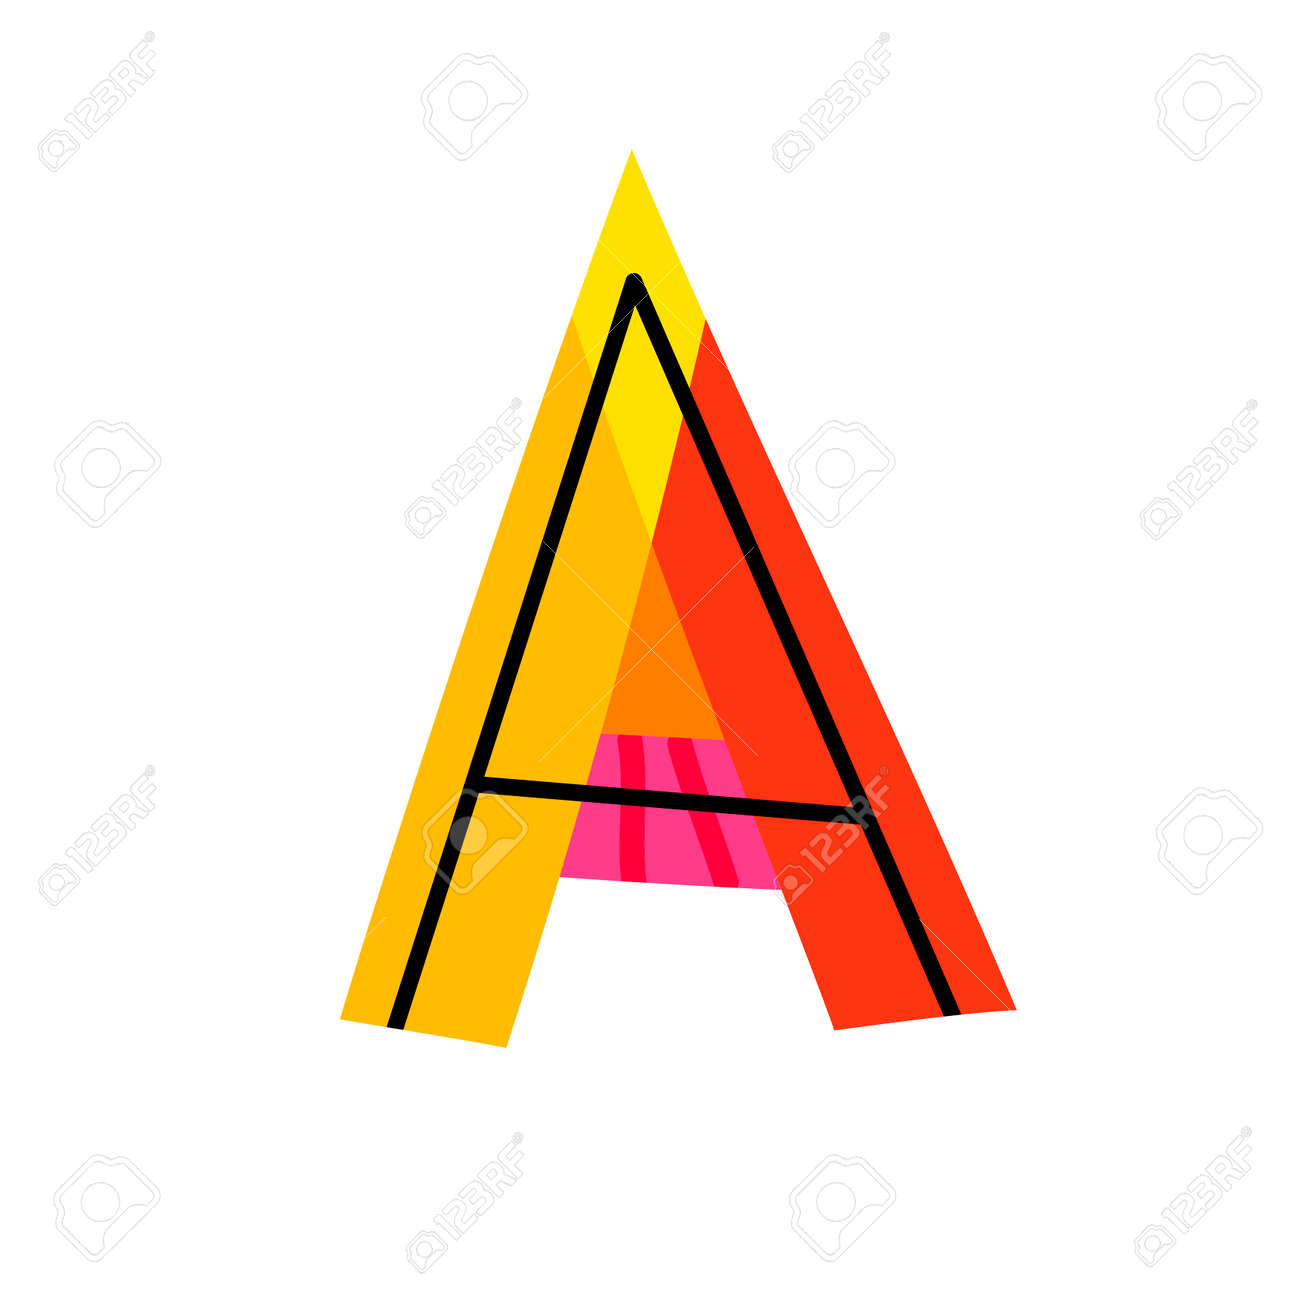 hight resolution of colorful letter a clipart image stock vector 88492038